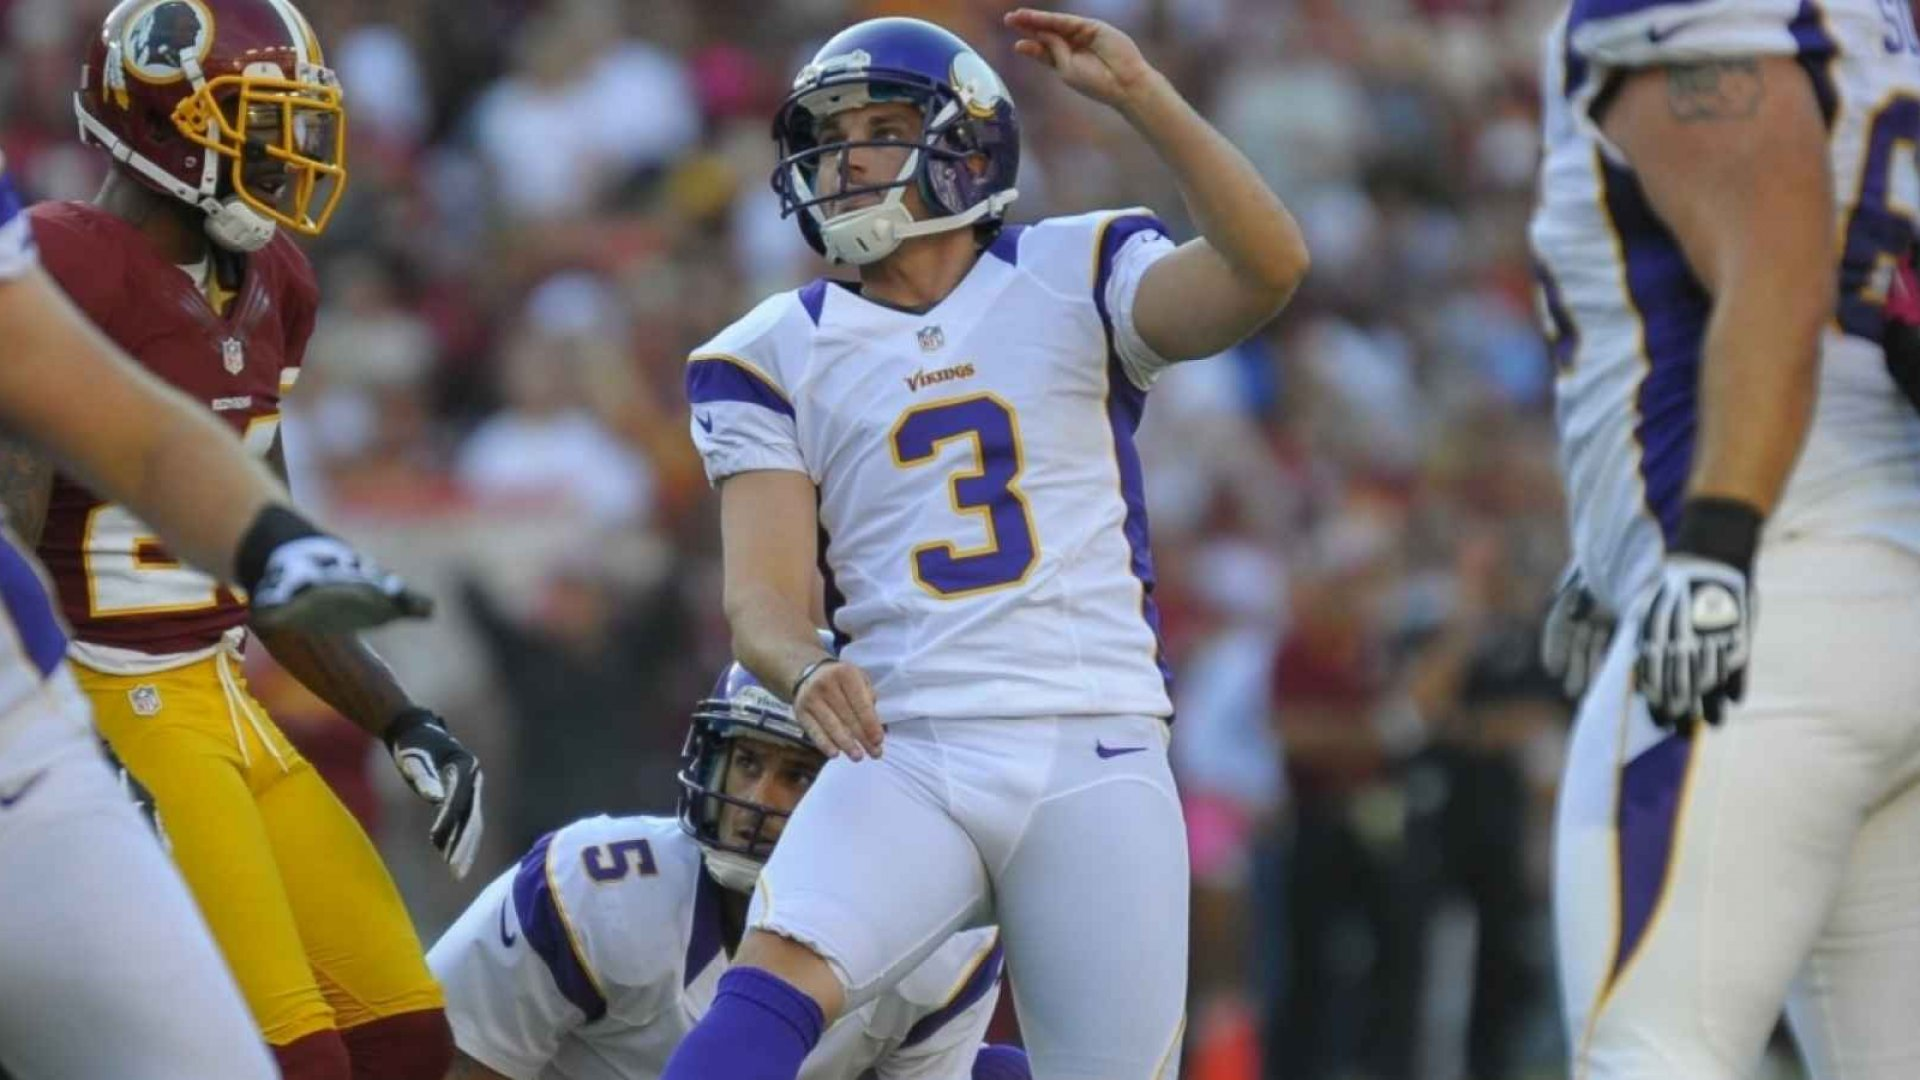 The last time he attempted to kick a field goal during an NFL game, Minnesota Vikings kicker Blair Walsh failed - miserably - in front of millions of fans, costing his team a playoff victory.